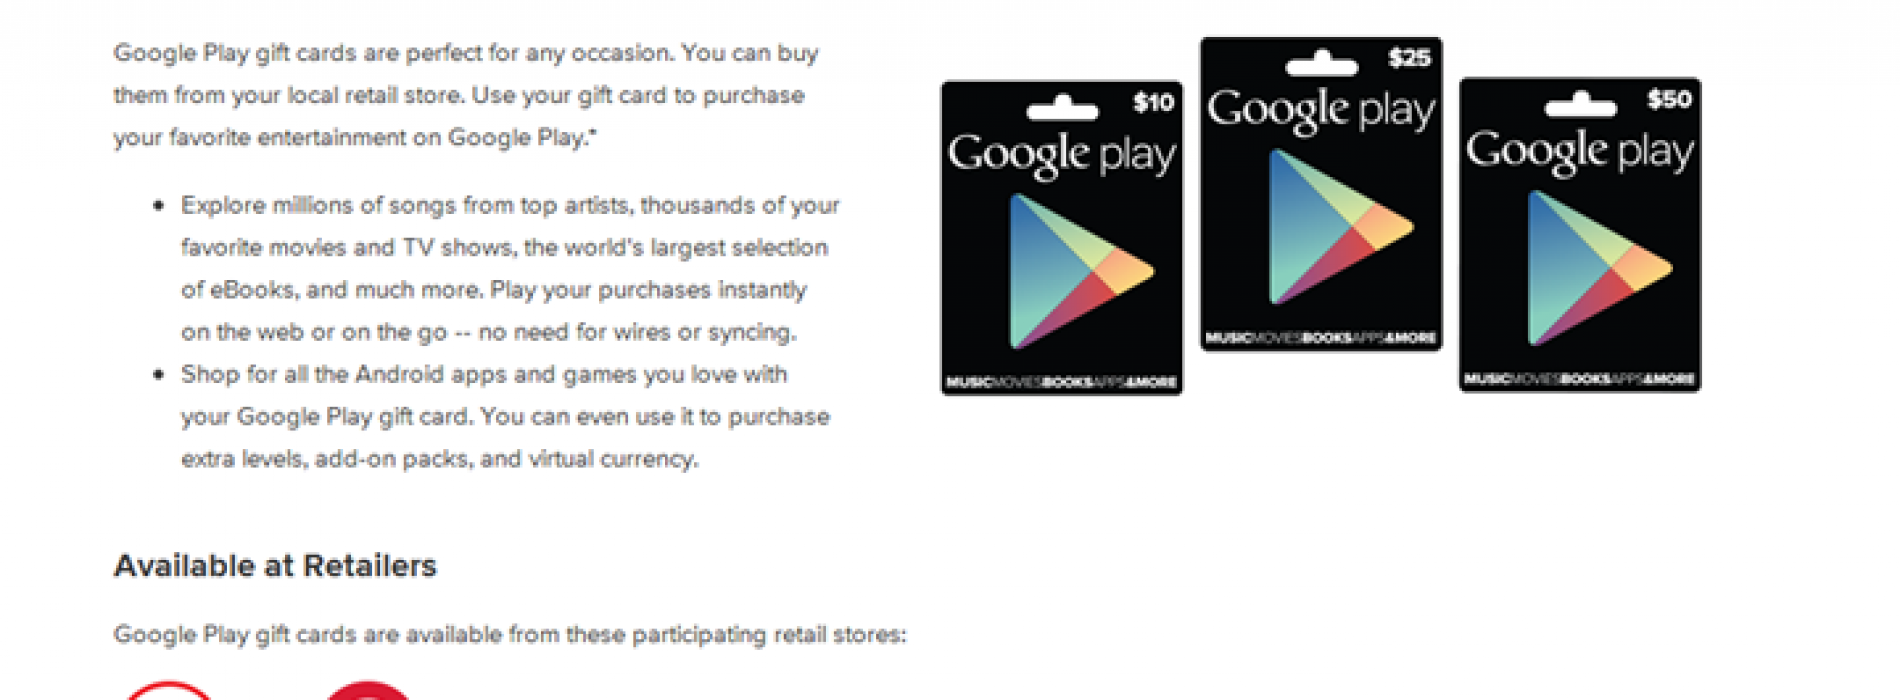 Target, GameStop, RadioShack officially getting Google Play gift cards